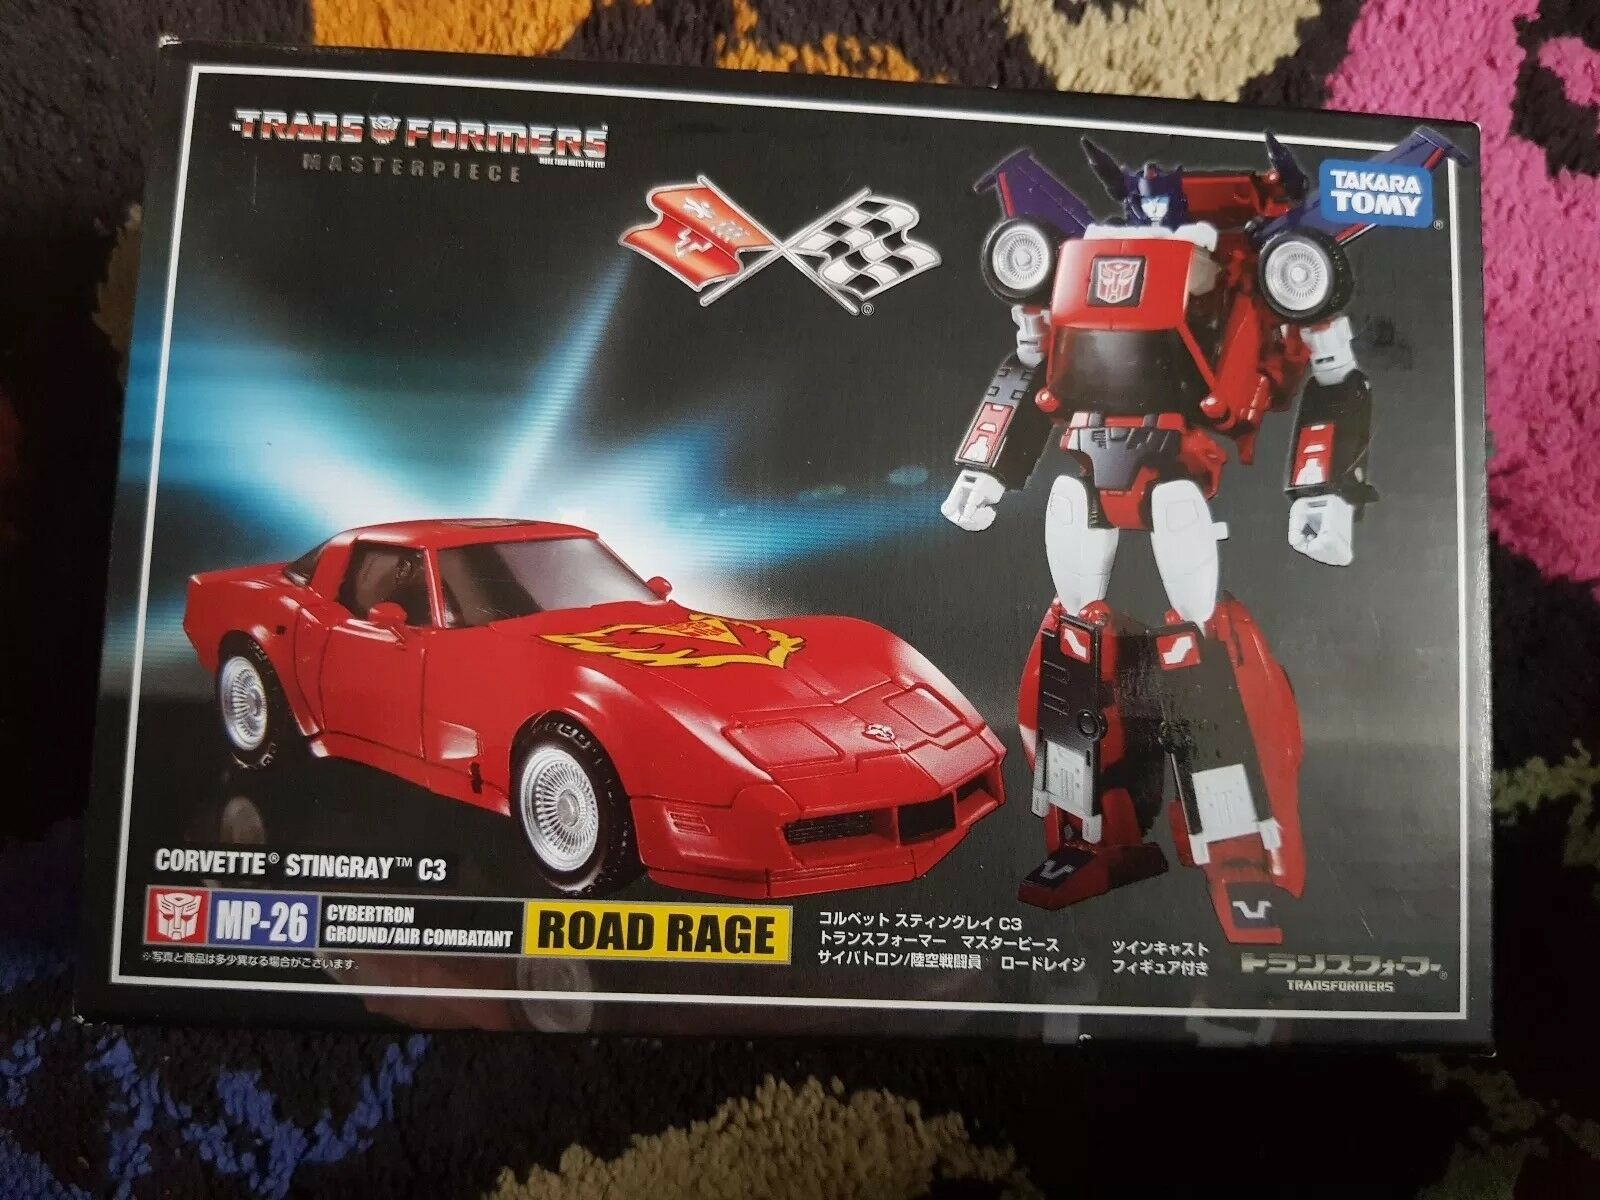 TRANSFORMERS MASTERPIECE MP-26 ROAD RAGE RED CHEVROLET FIGURE TOY